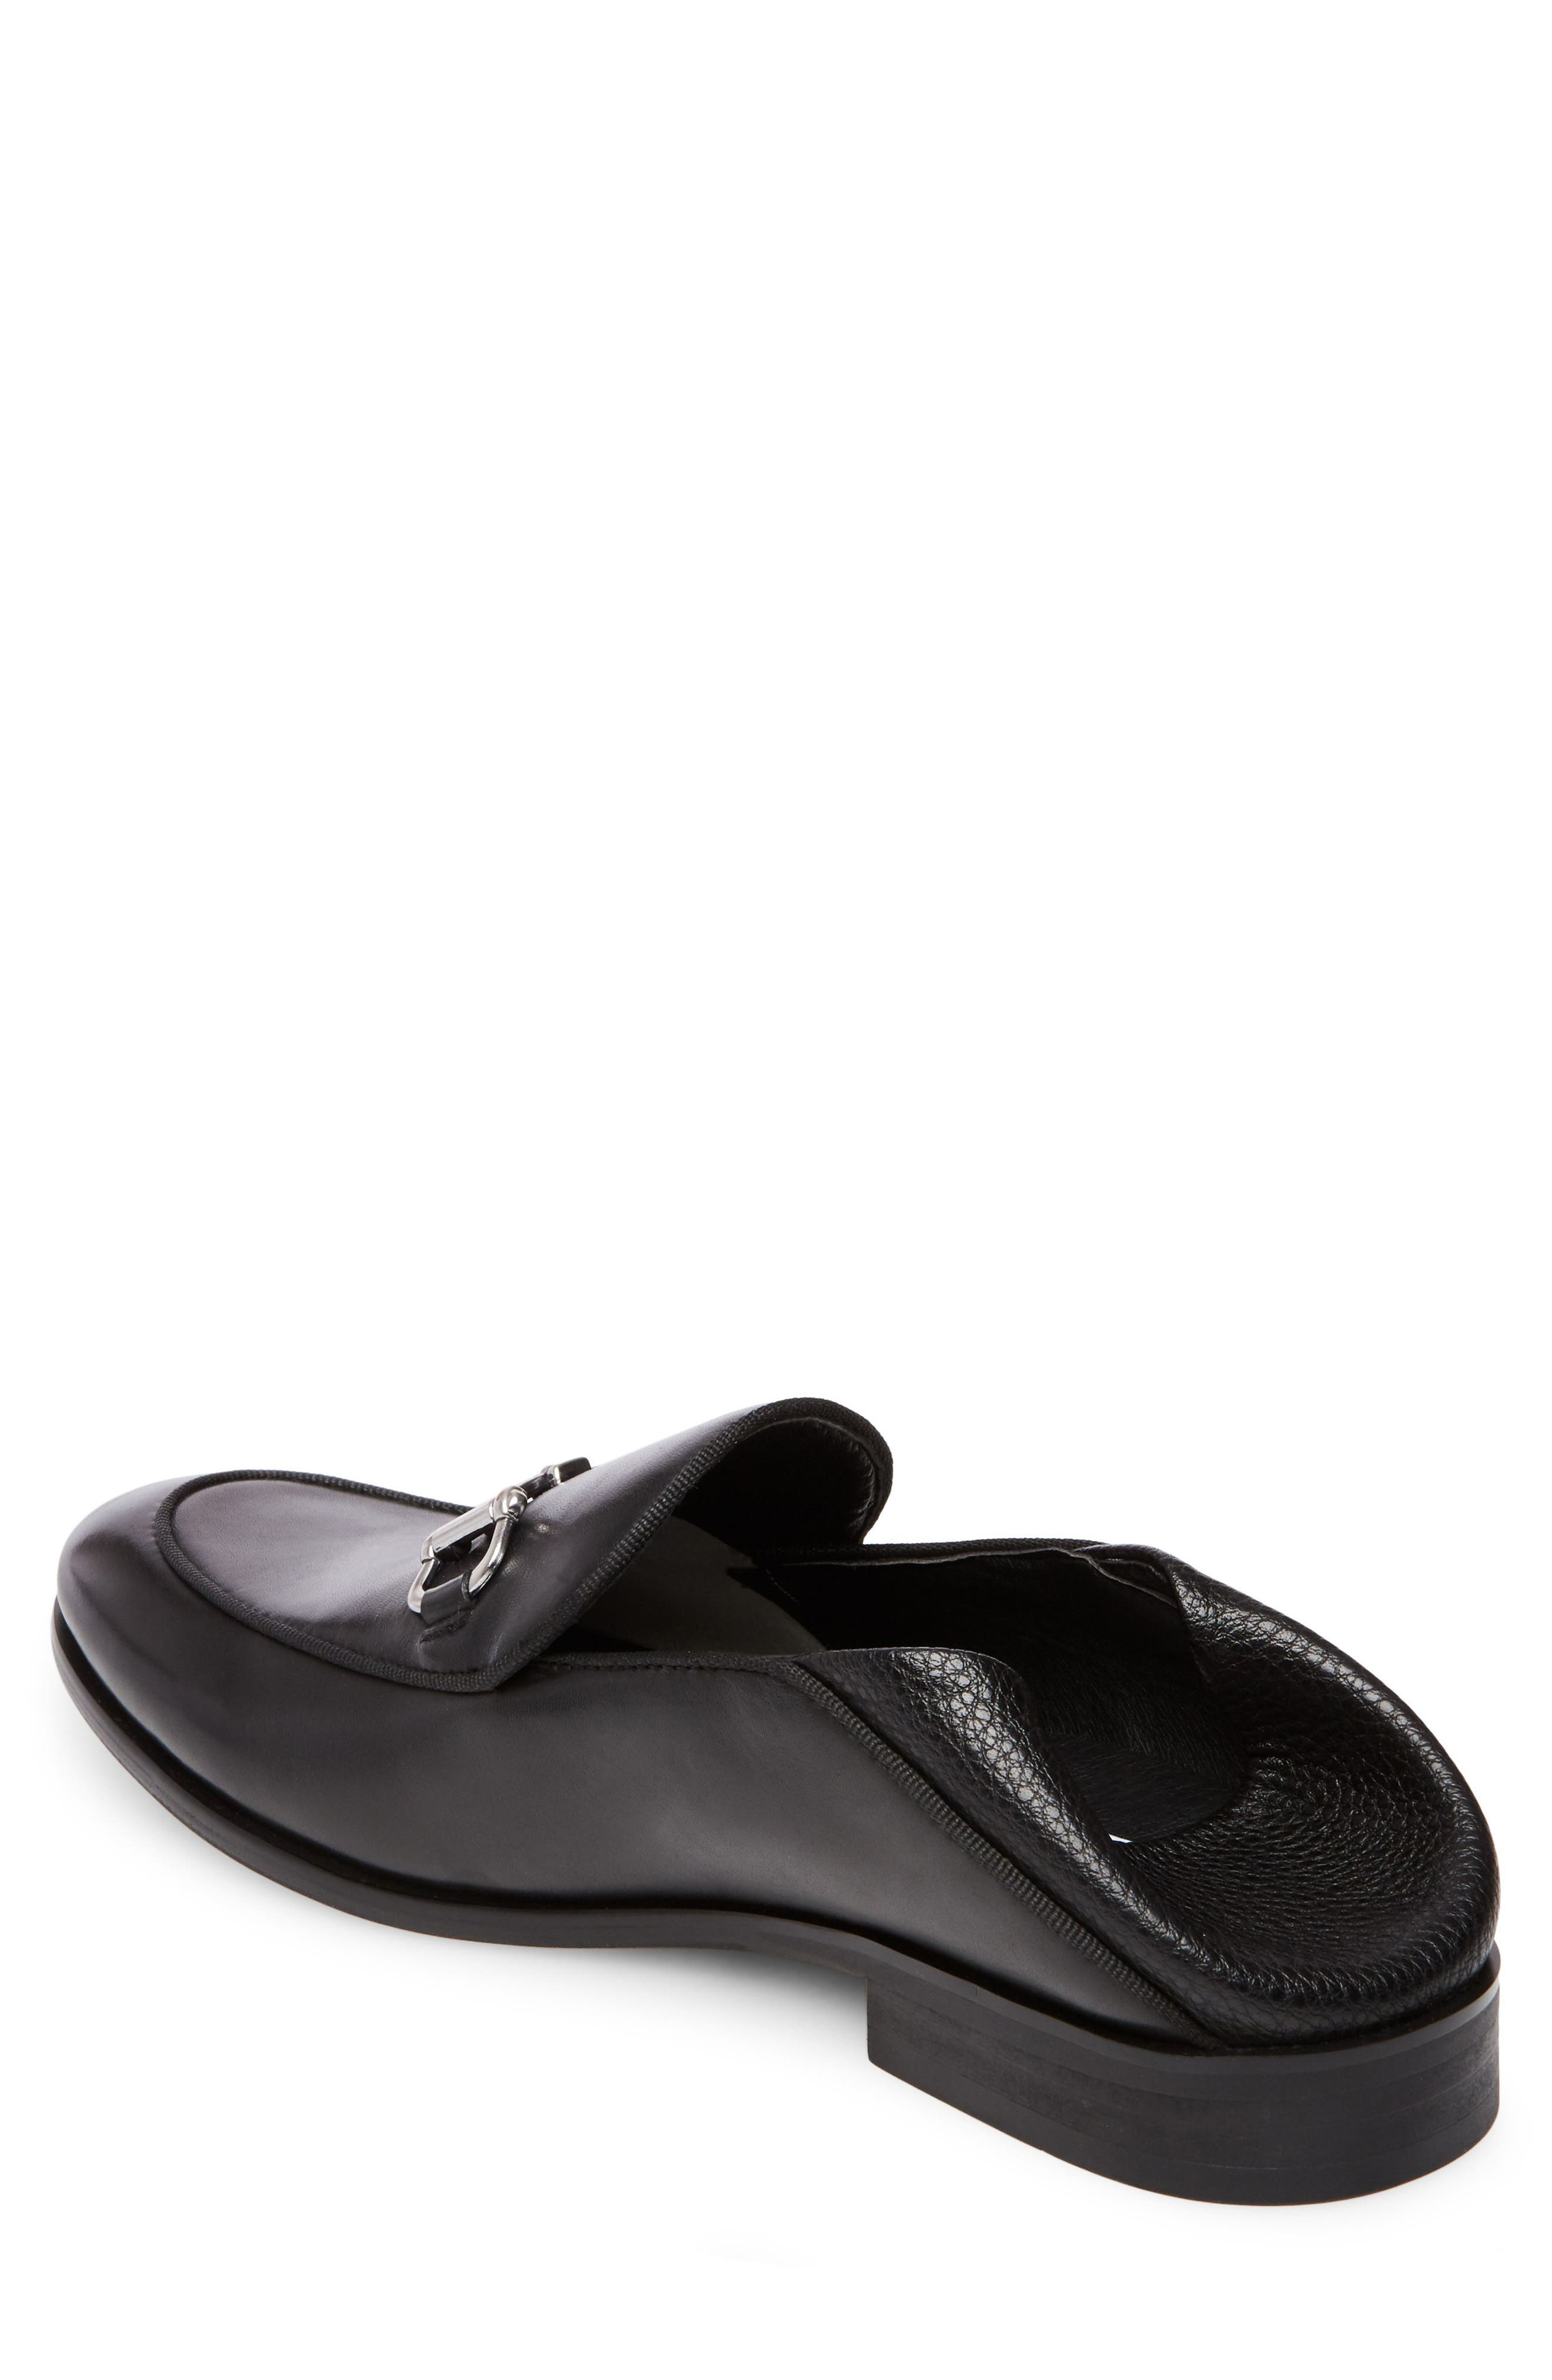 Sauce Bit Collapsible Loafer,                             Alternate thumbnail 3, color,